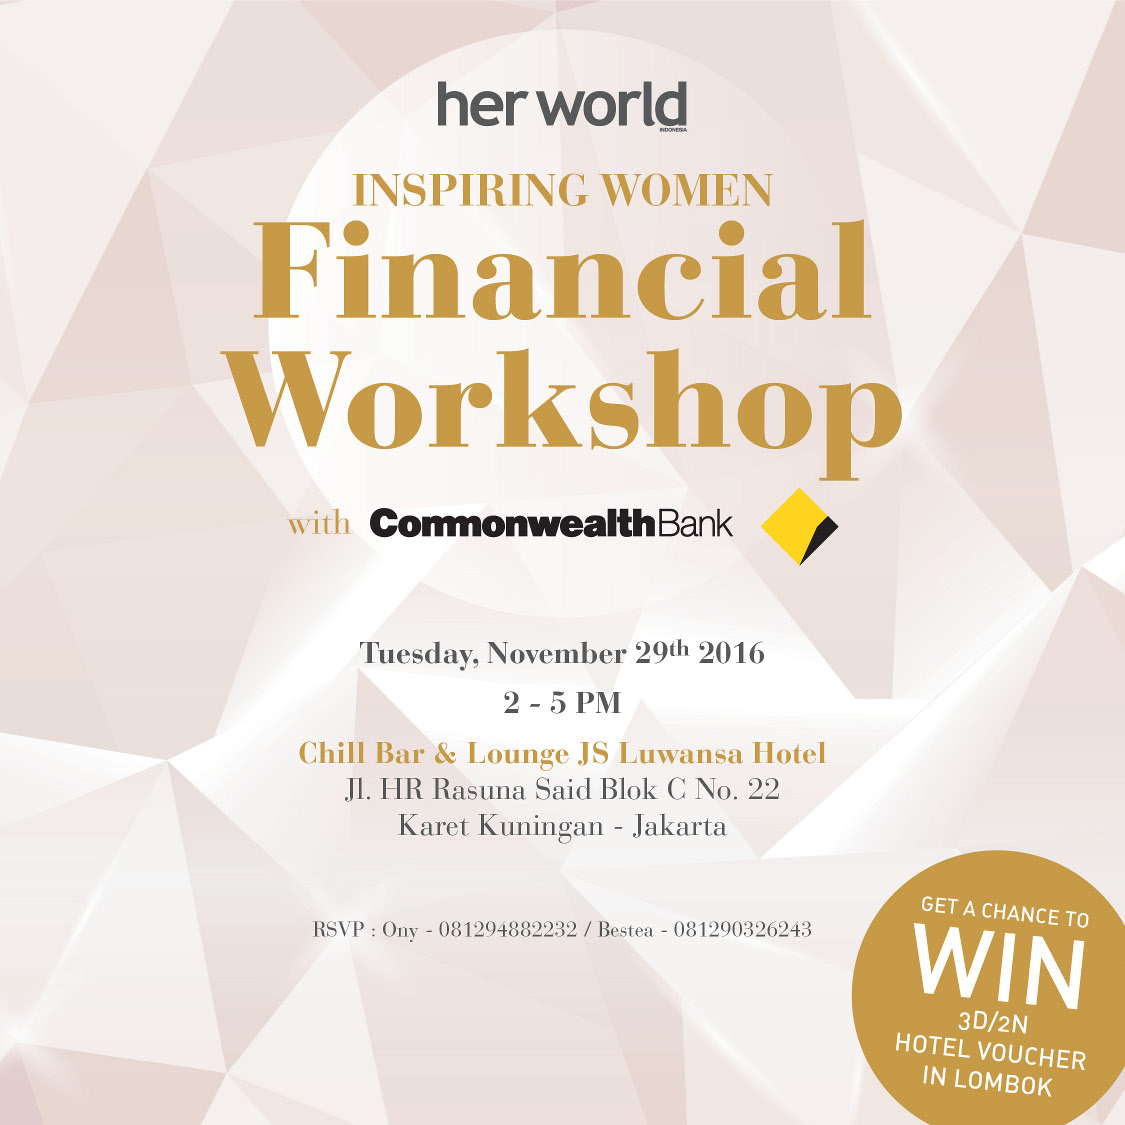 Financial Workshop with Commonwealth Bank